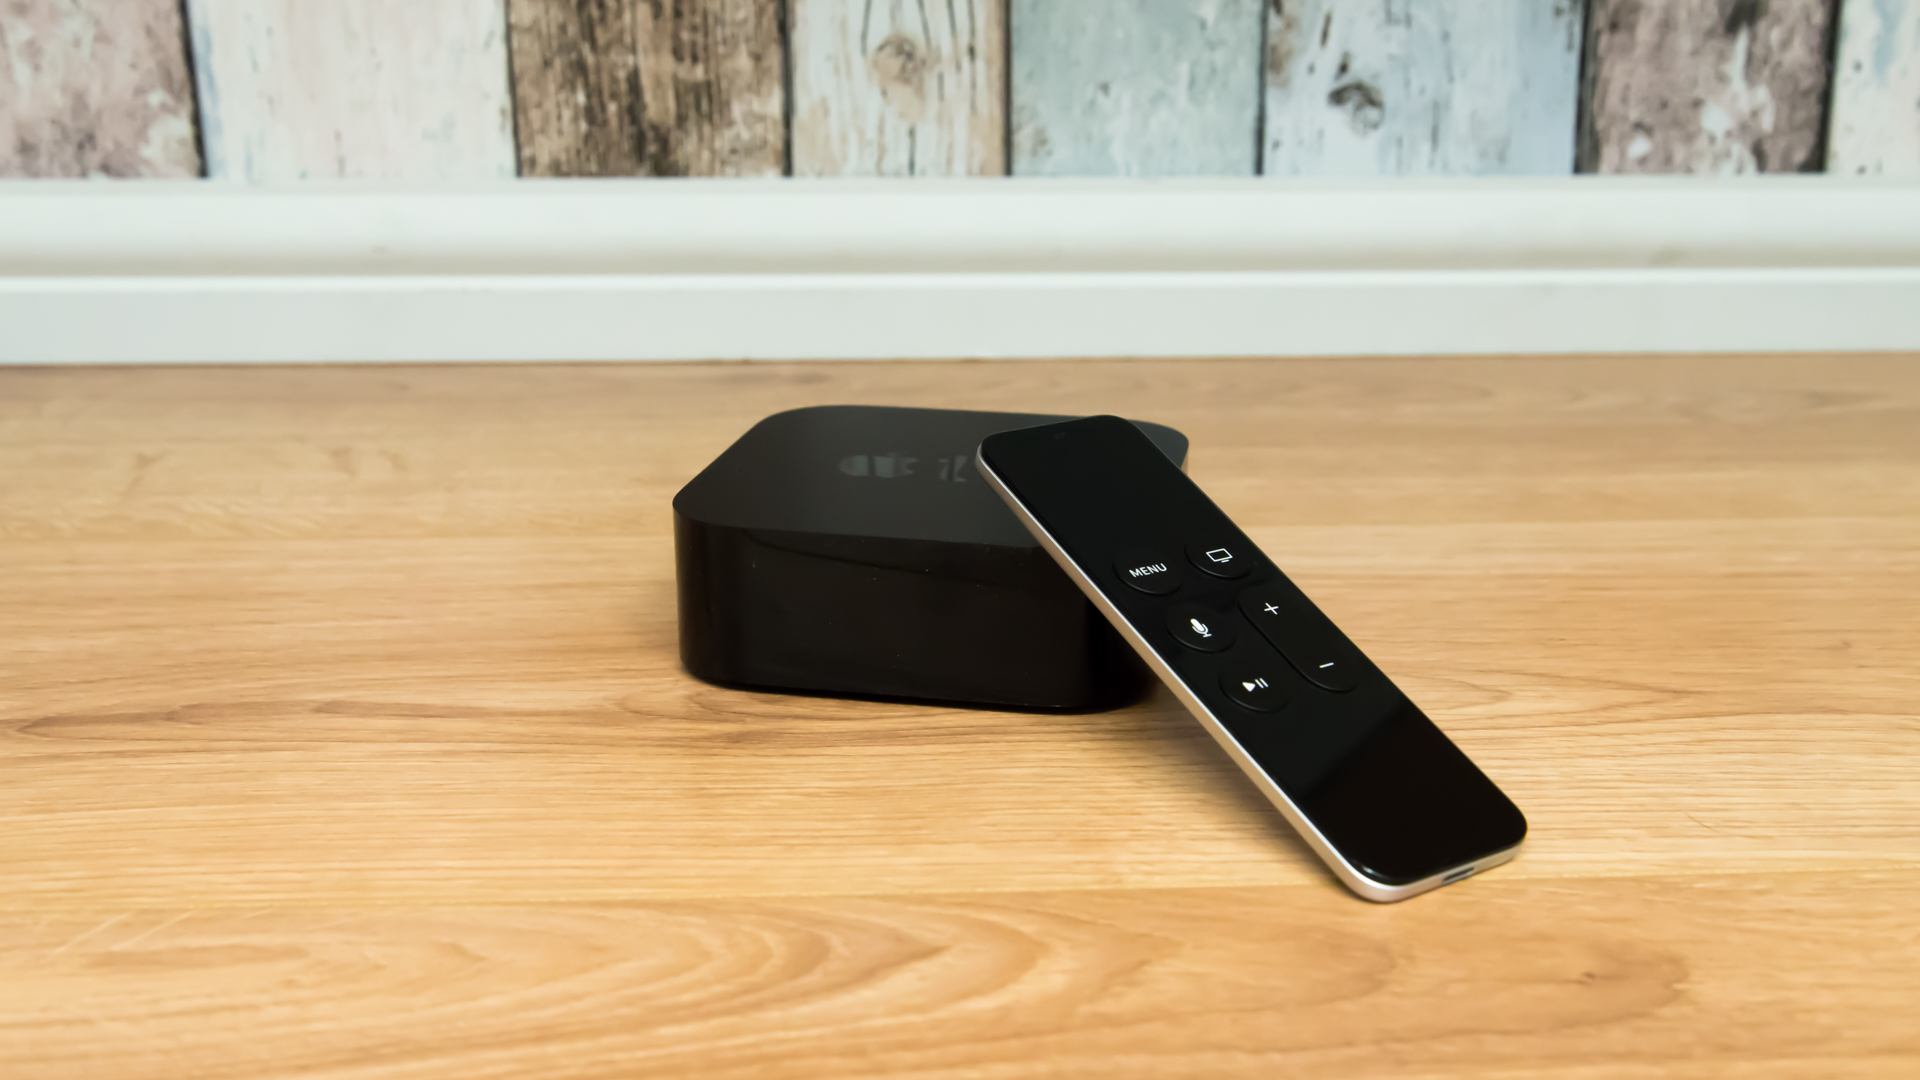 When to expect the new Apple TV?